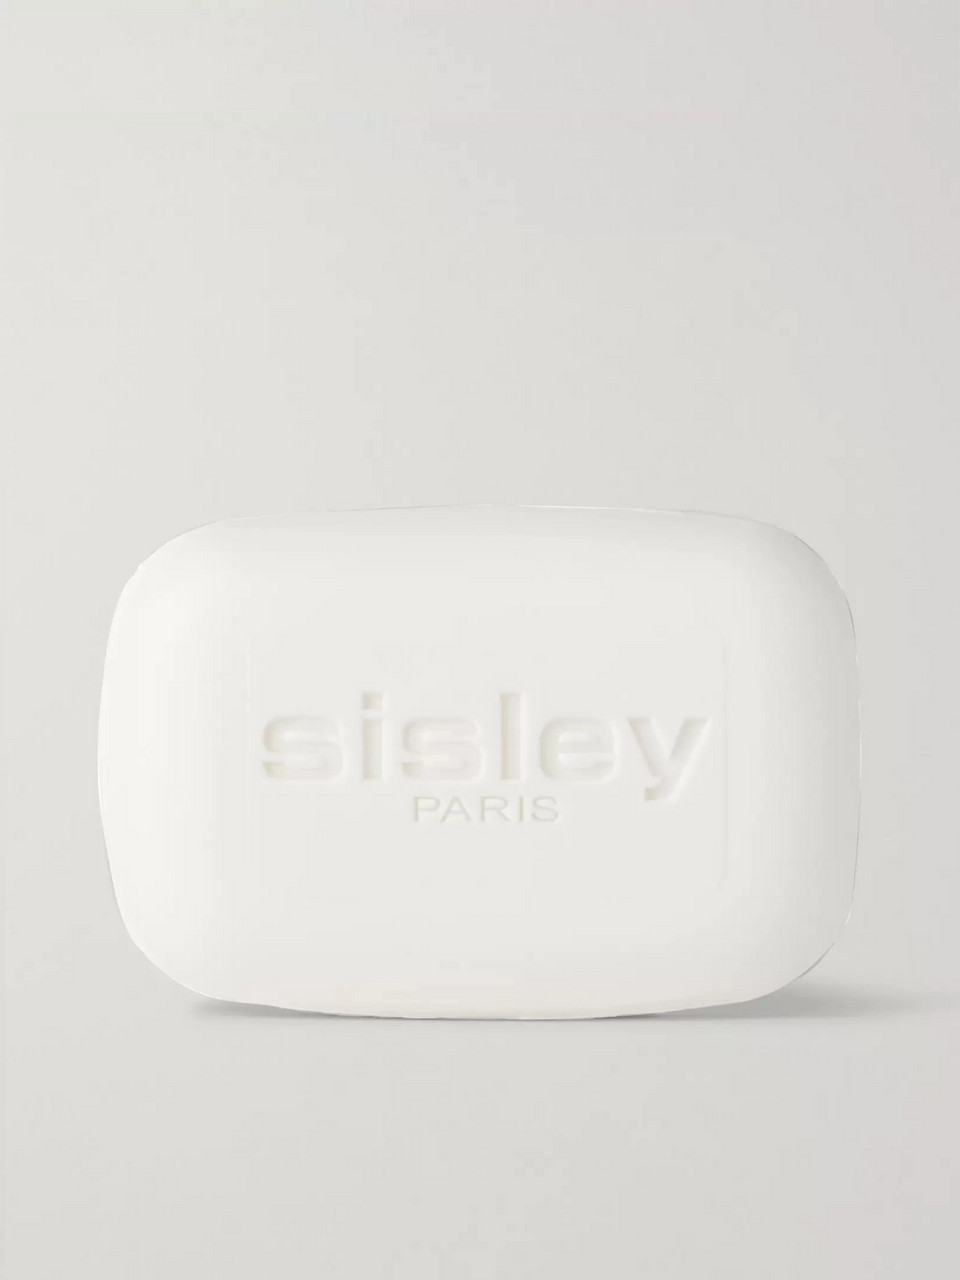 Sisley - Paris Soapless Facial Cleansing Bar, 125g